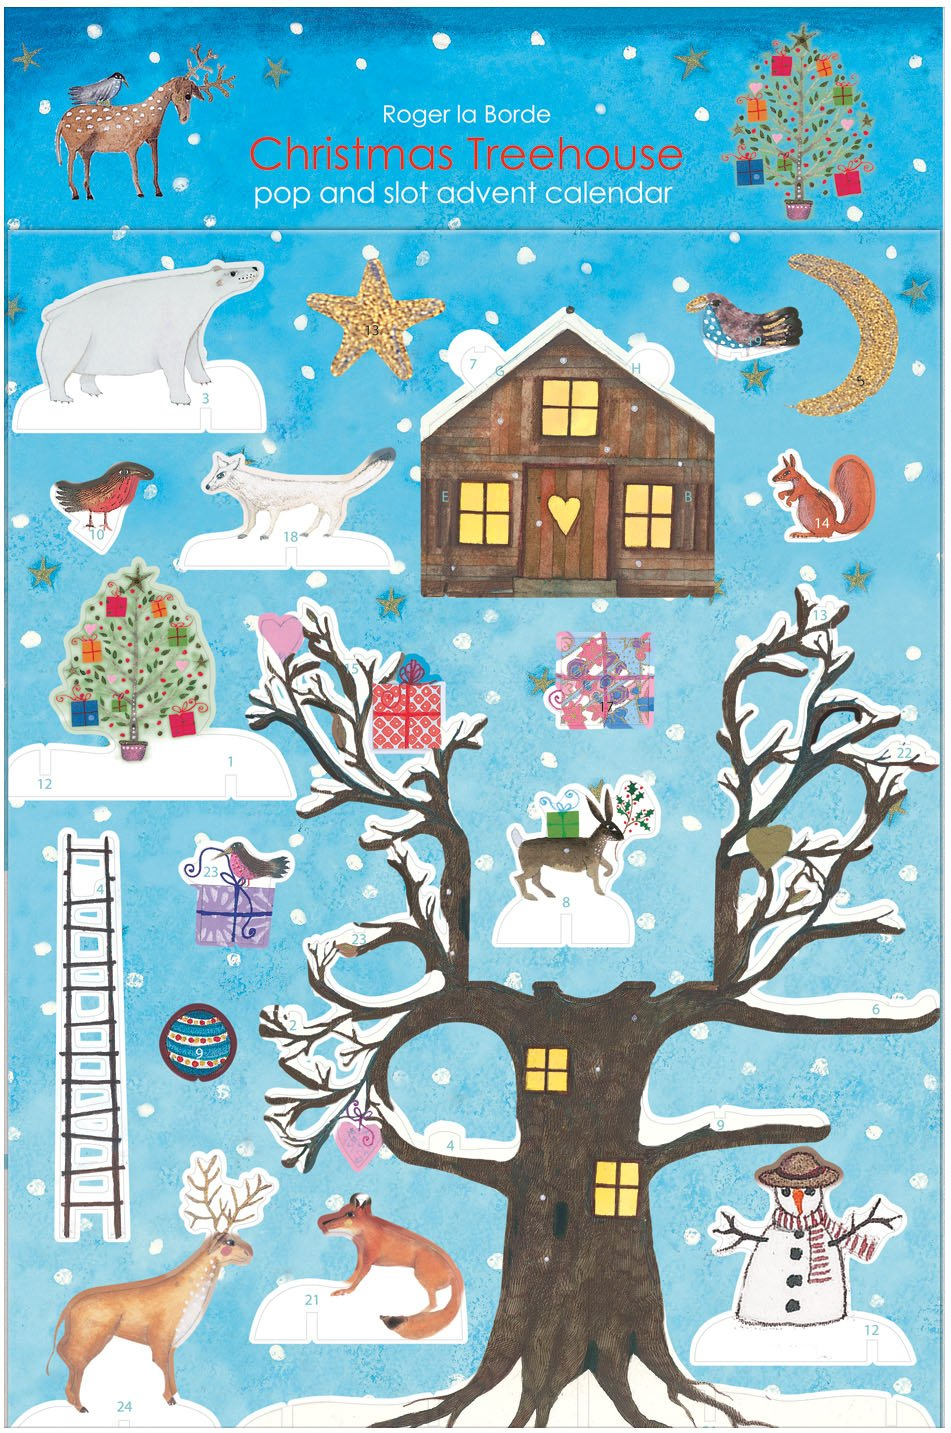 CHRISTMAS TREEHOUSE POP AND SLOT ADVENT CALENDAR ROGER LA BORDE